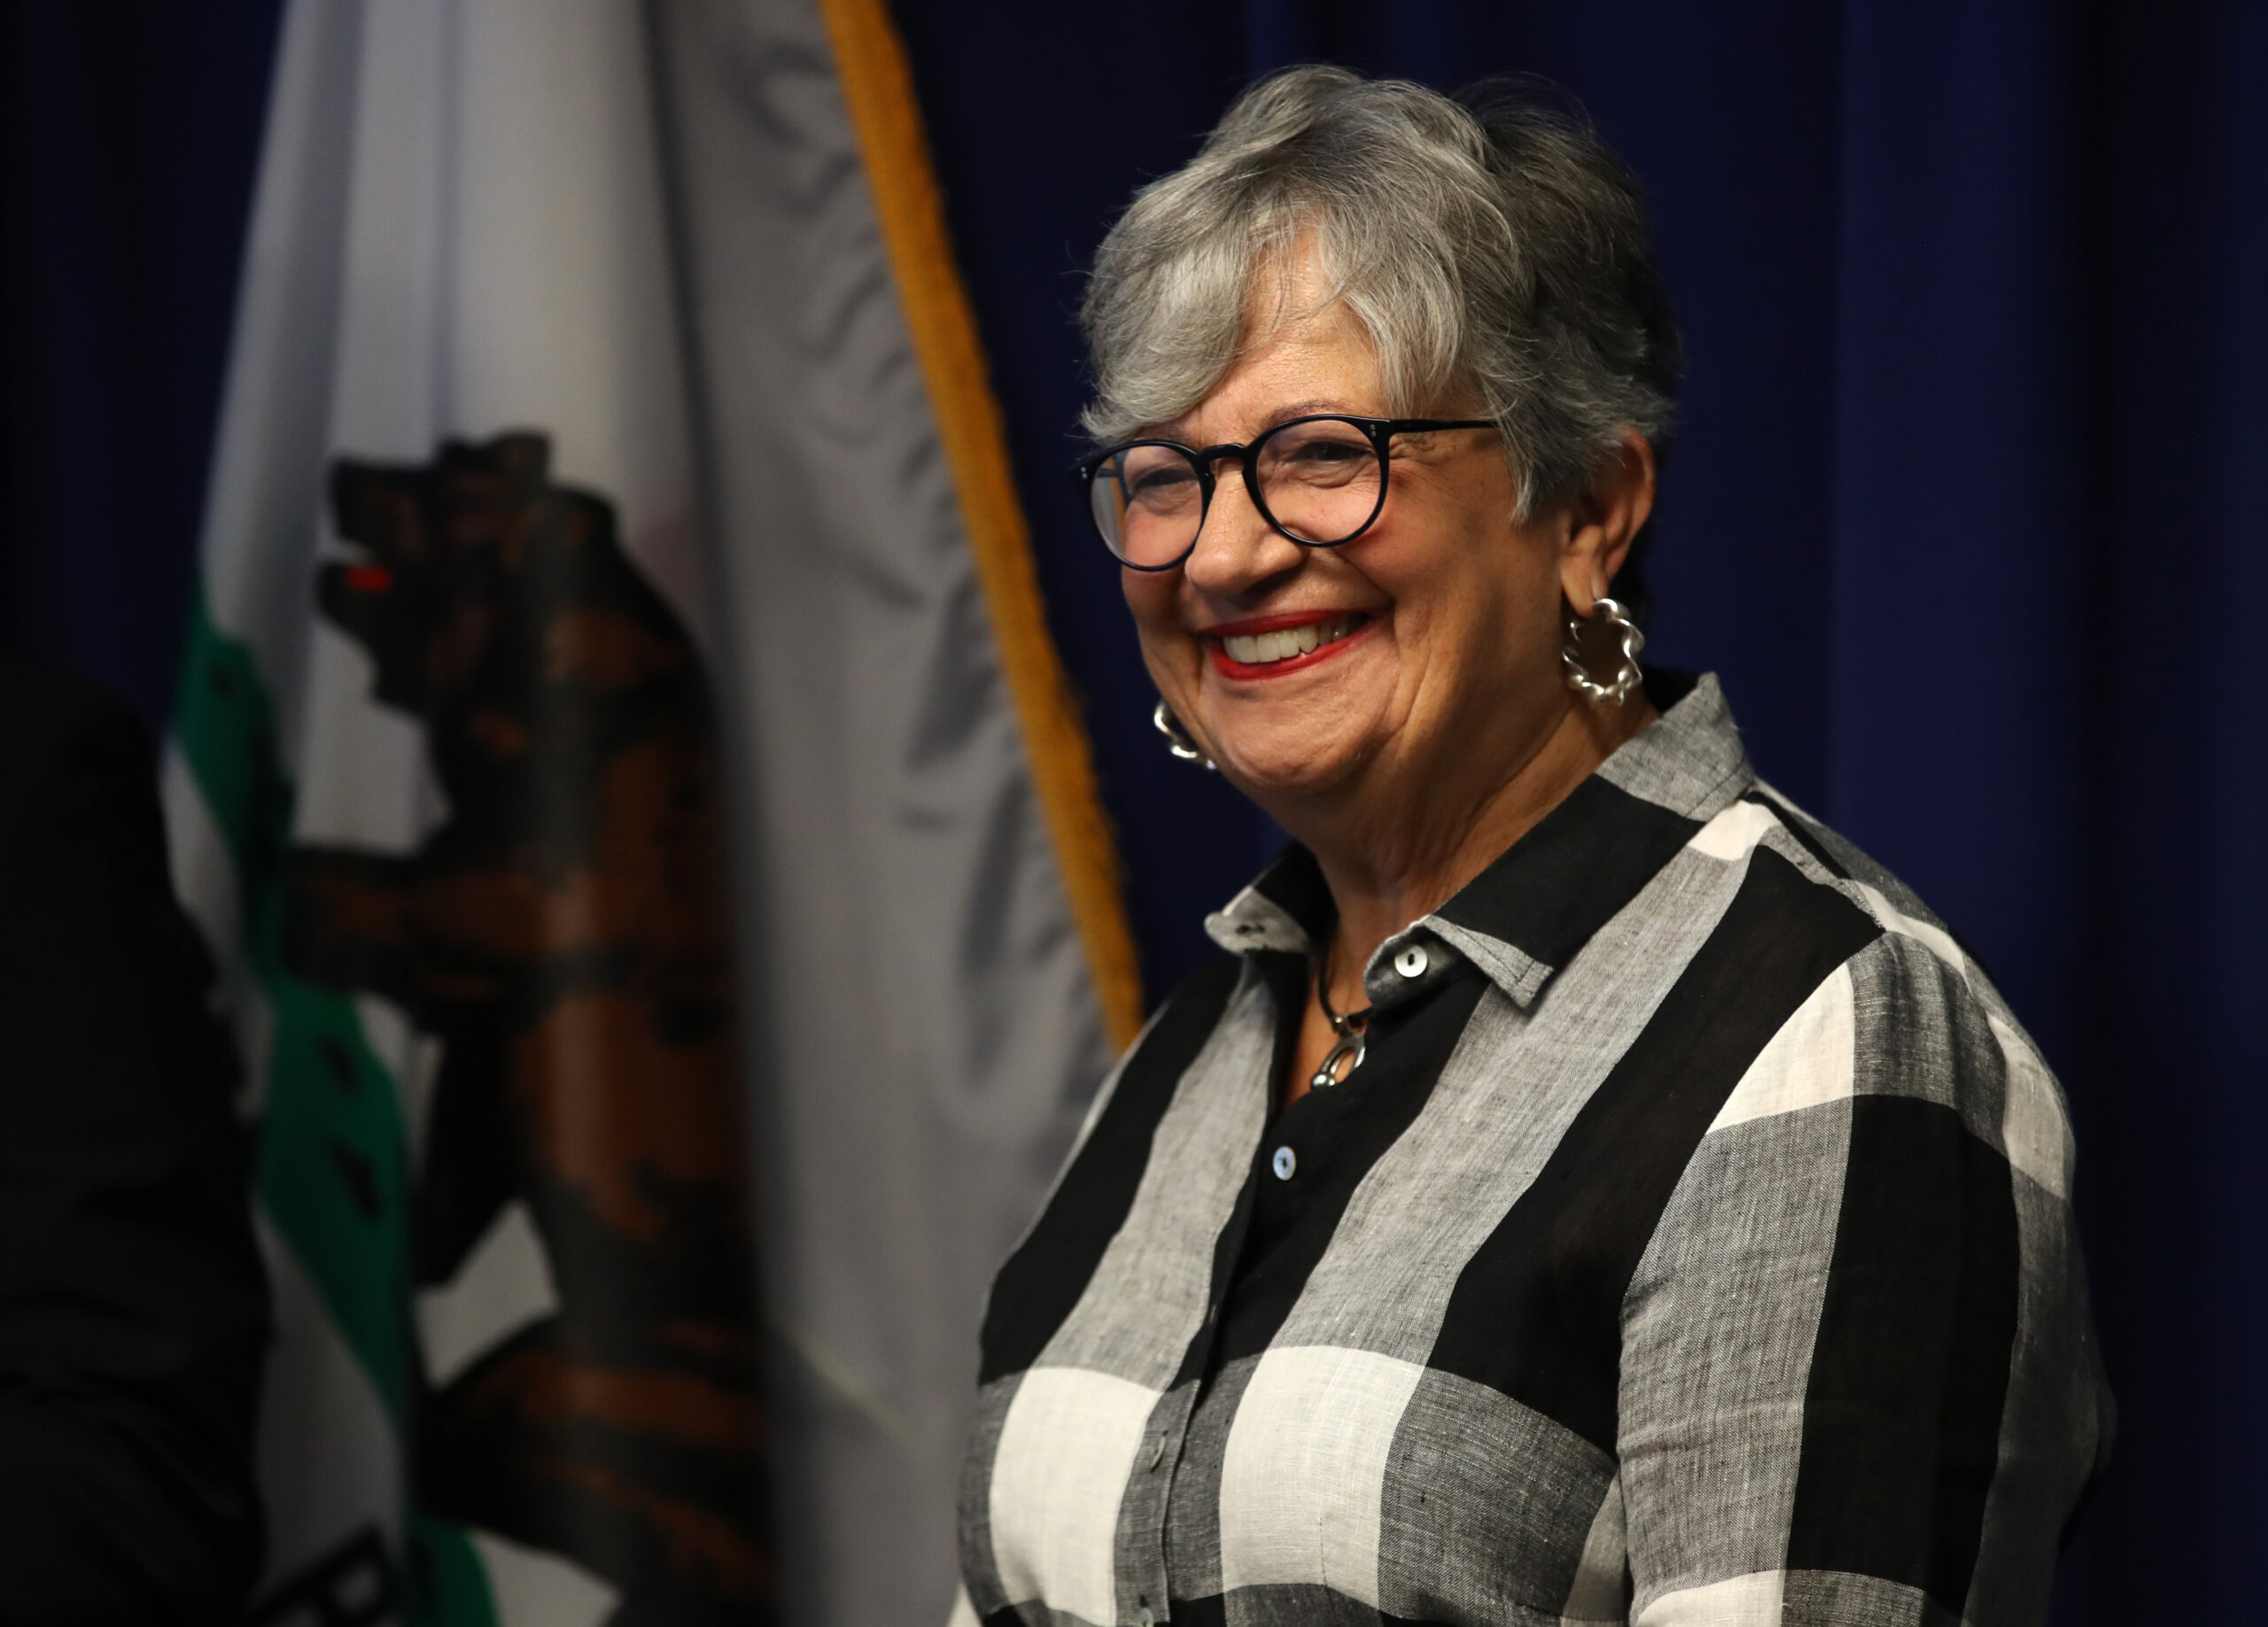 Former California Air Resources Board Chair Mary Nichols was rumored to be a top candidate for EPA Administrator in the Biden Administration. But after attacks on Nichols' record on environmental justice, Michael Regan was nominated for the post. Credit: Justin Sullivan/Getty Images